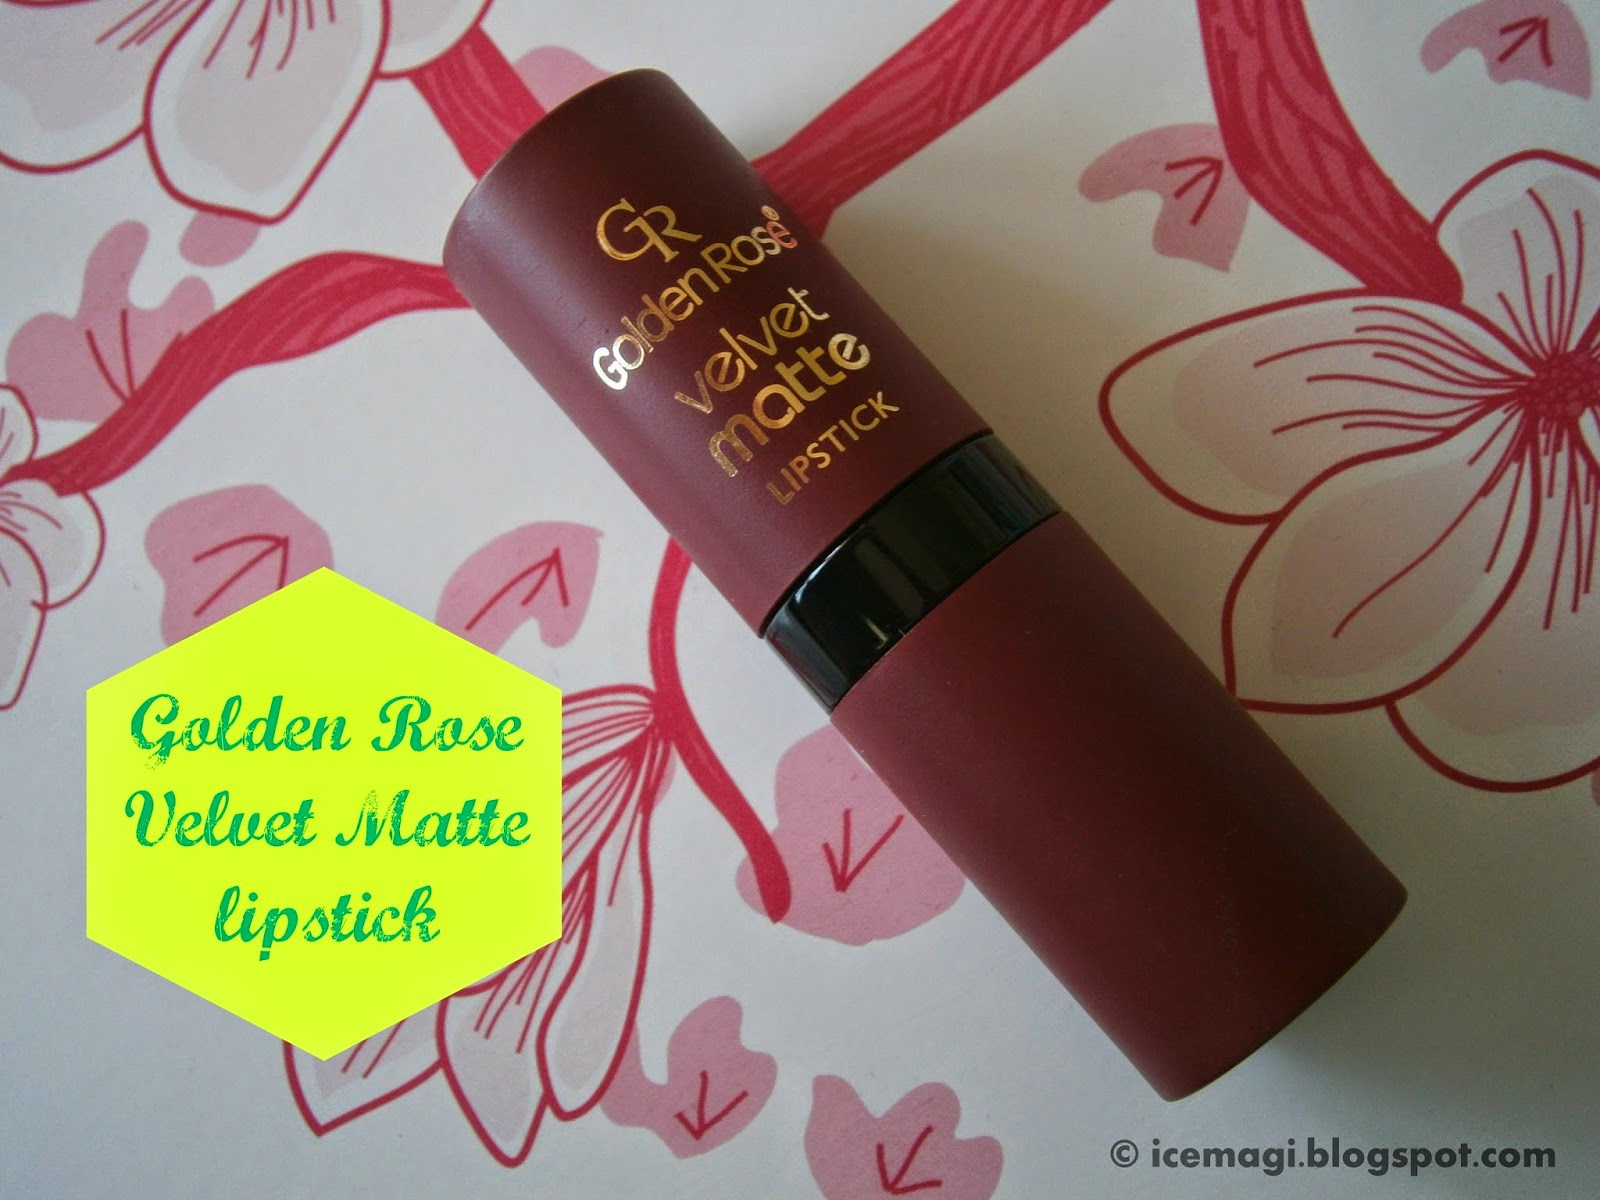 Golden Rose velvet matte lipstick 7